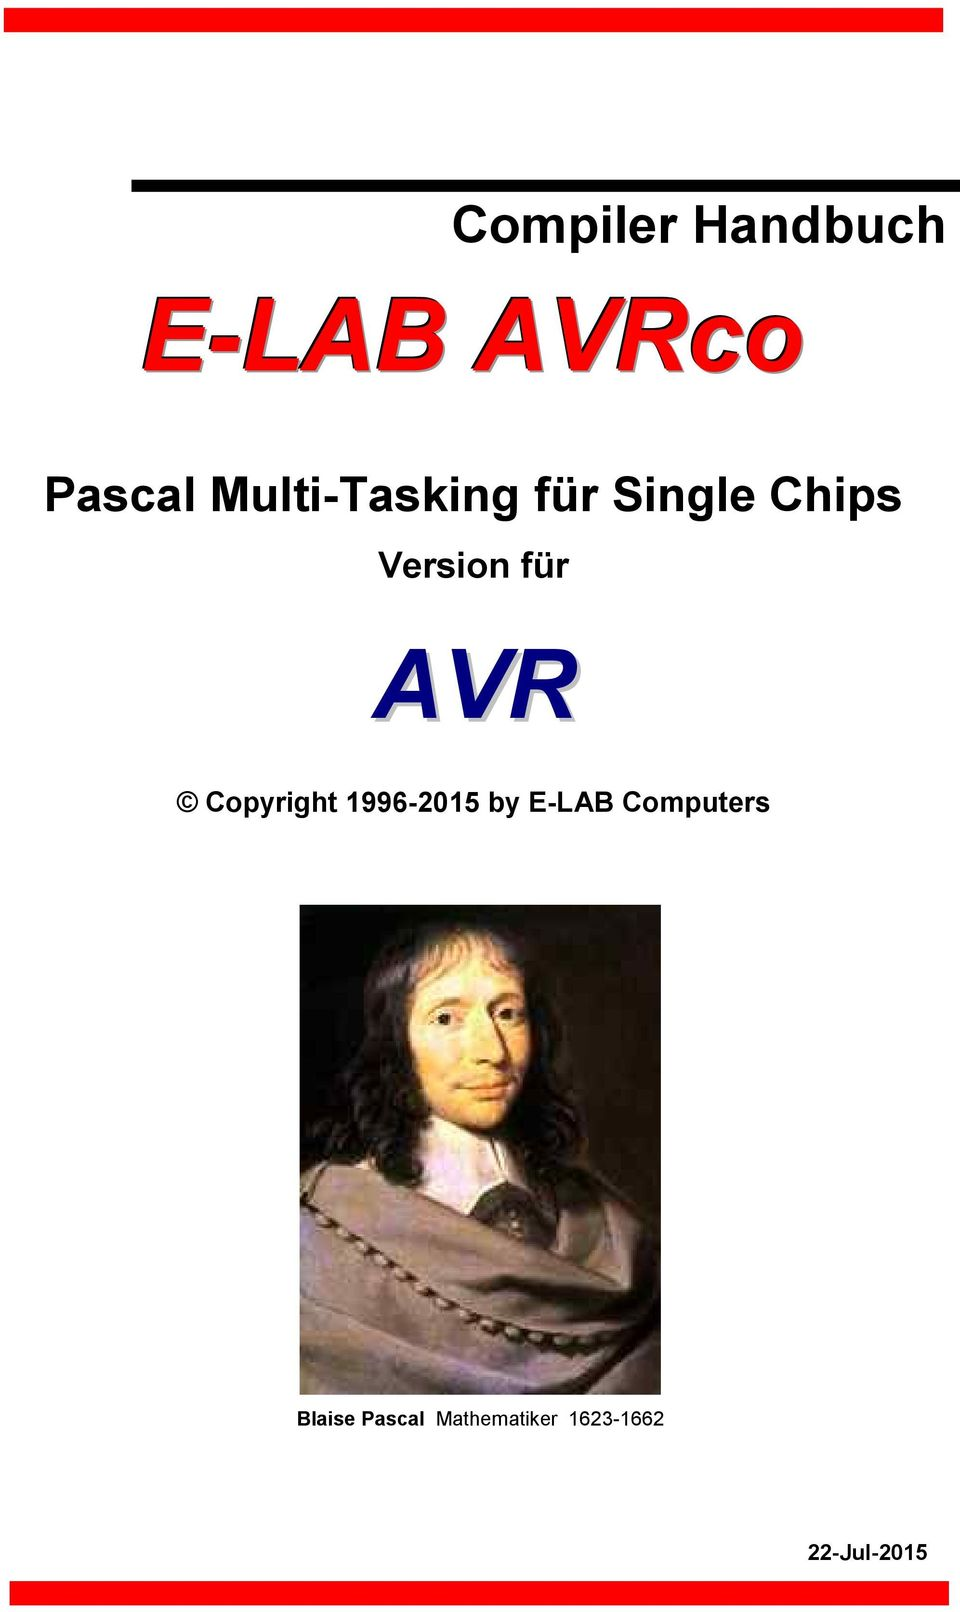 AVR Copyright 1996-2015 by E-LAB Computers